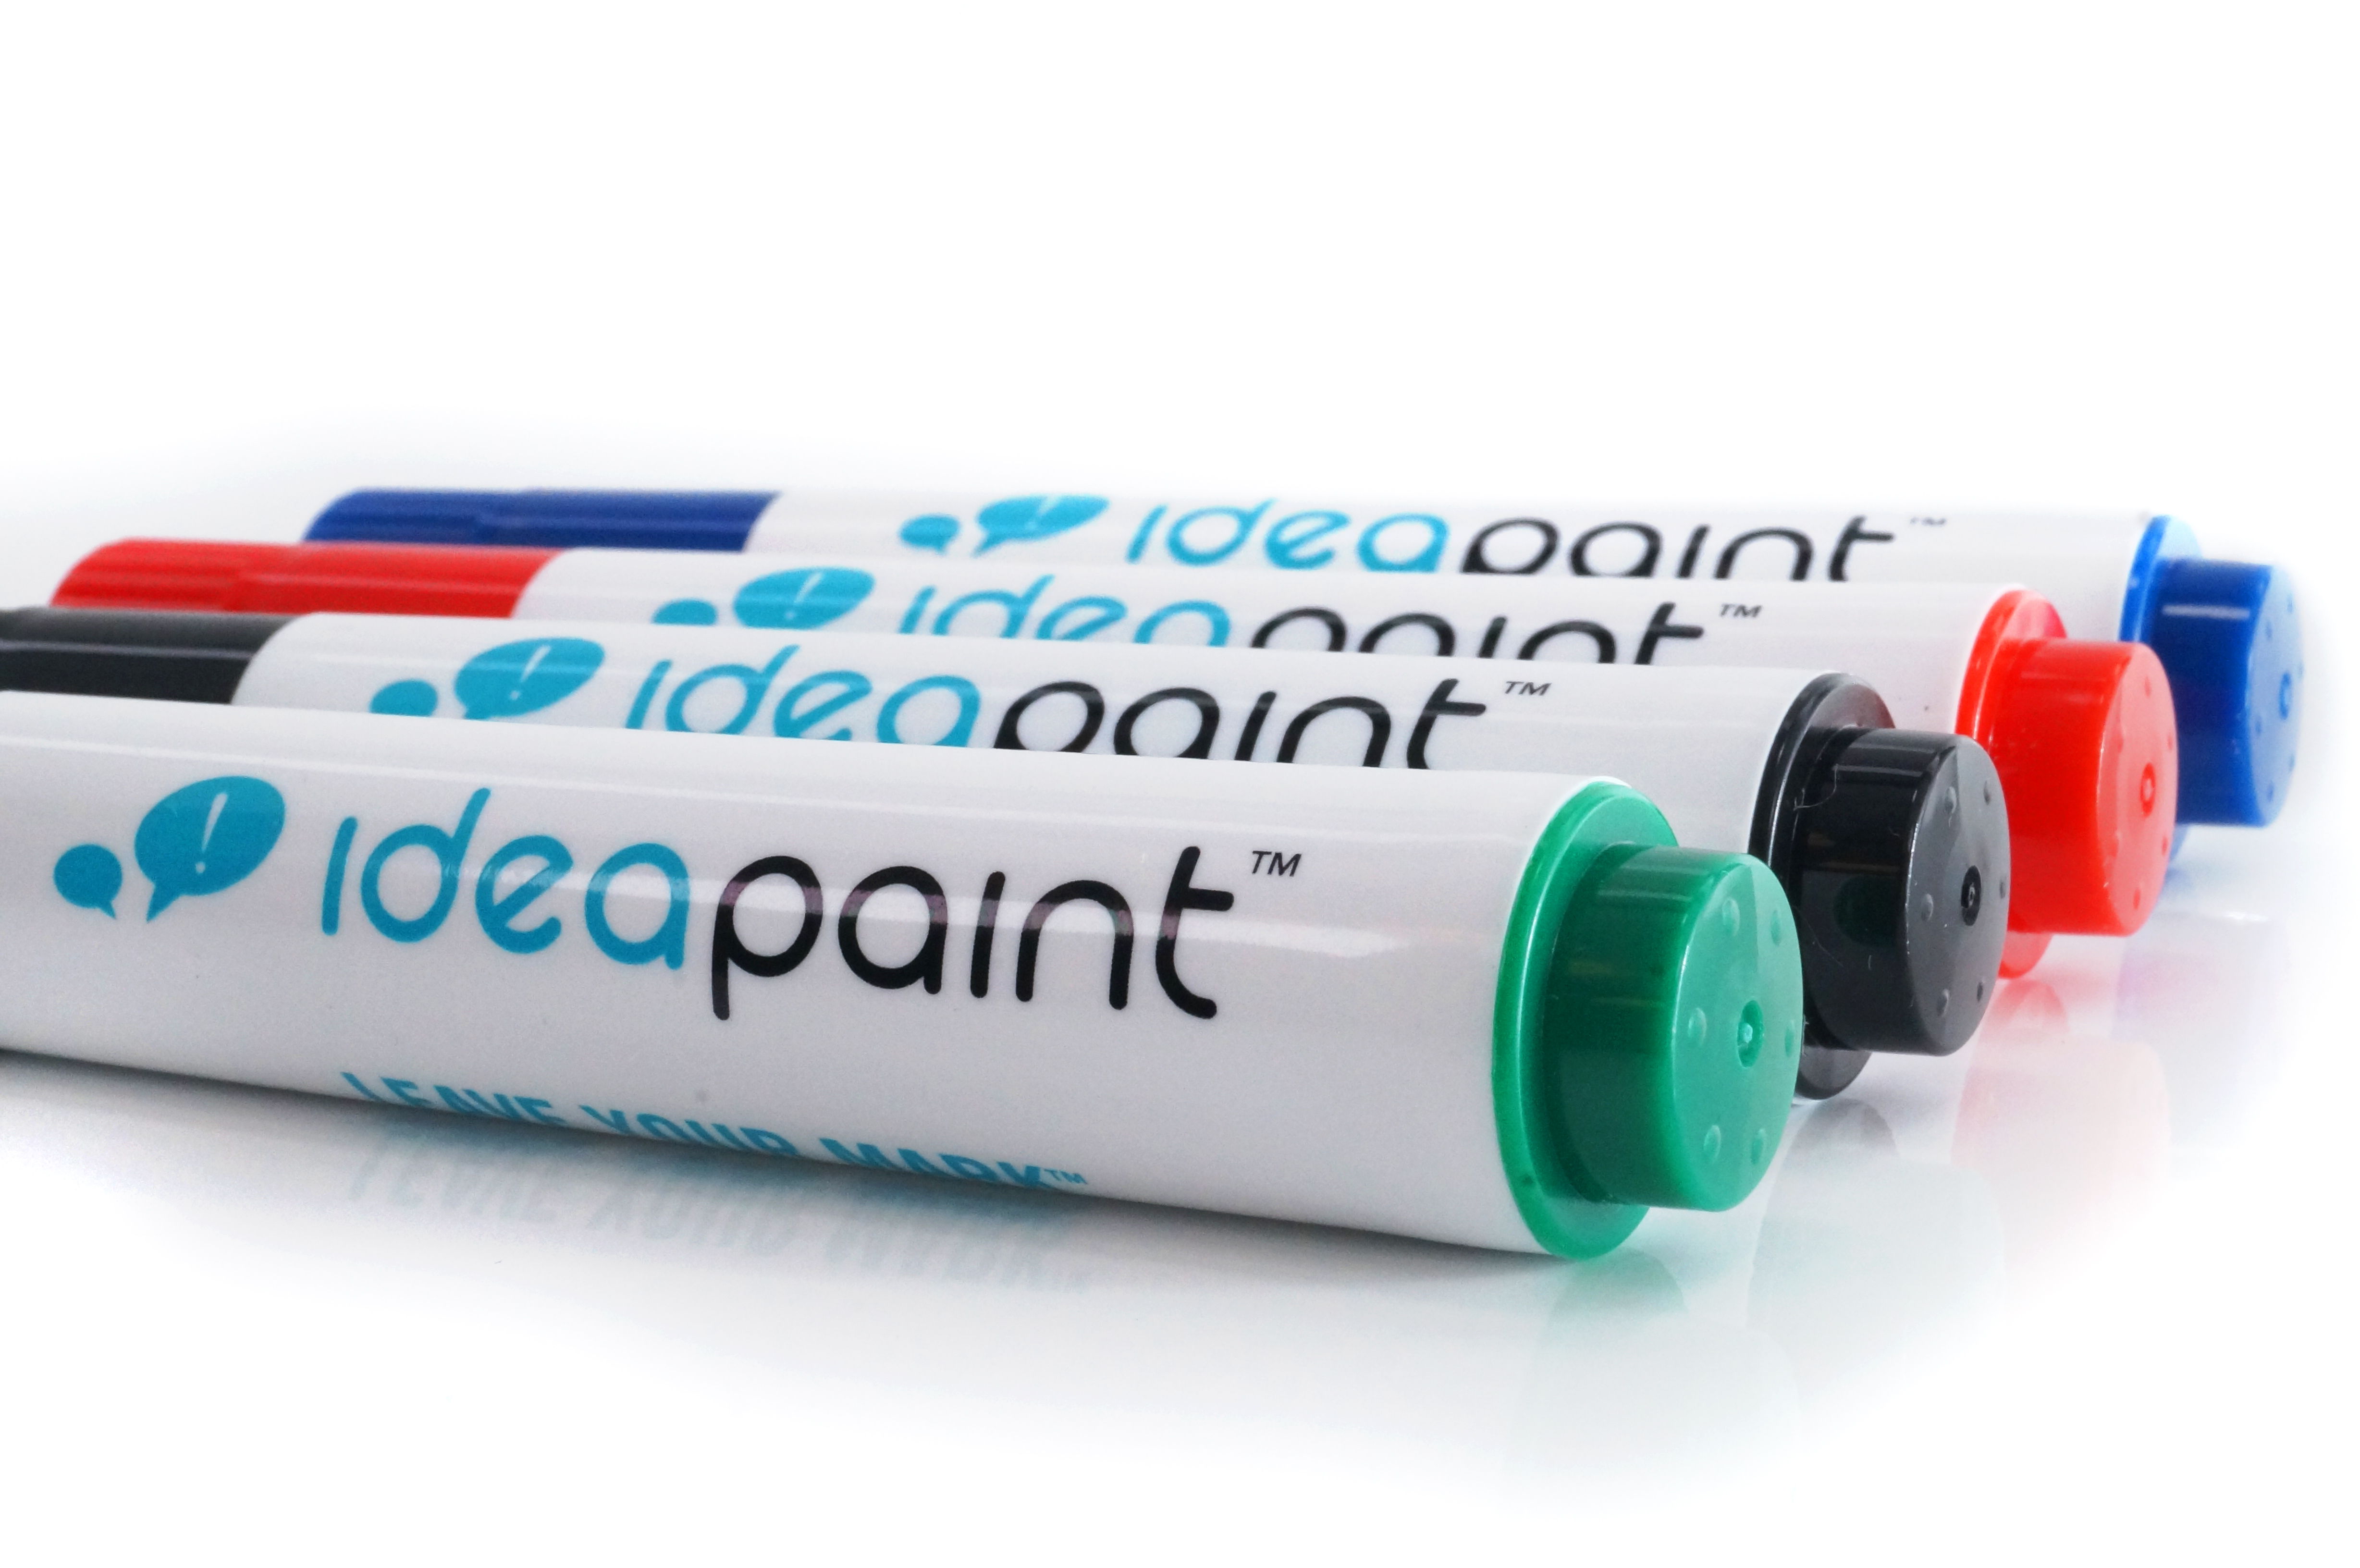 IdeaPaint markers including green, red, black and blue